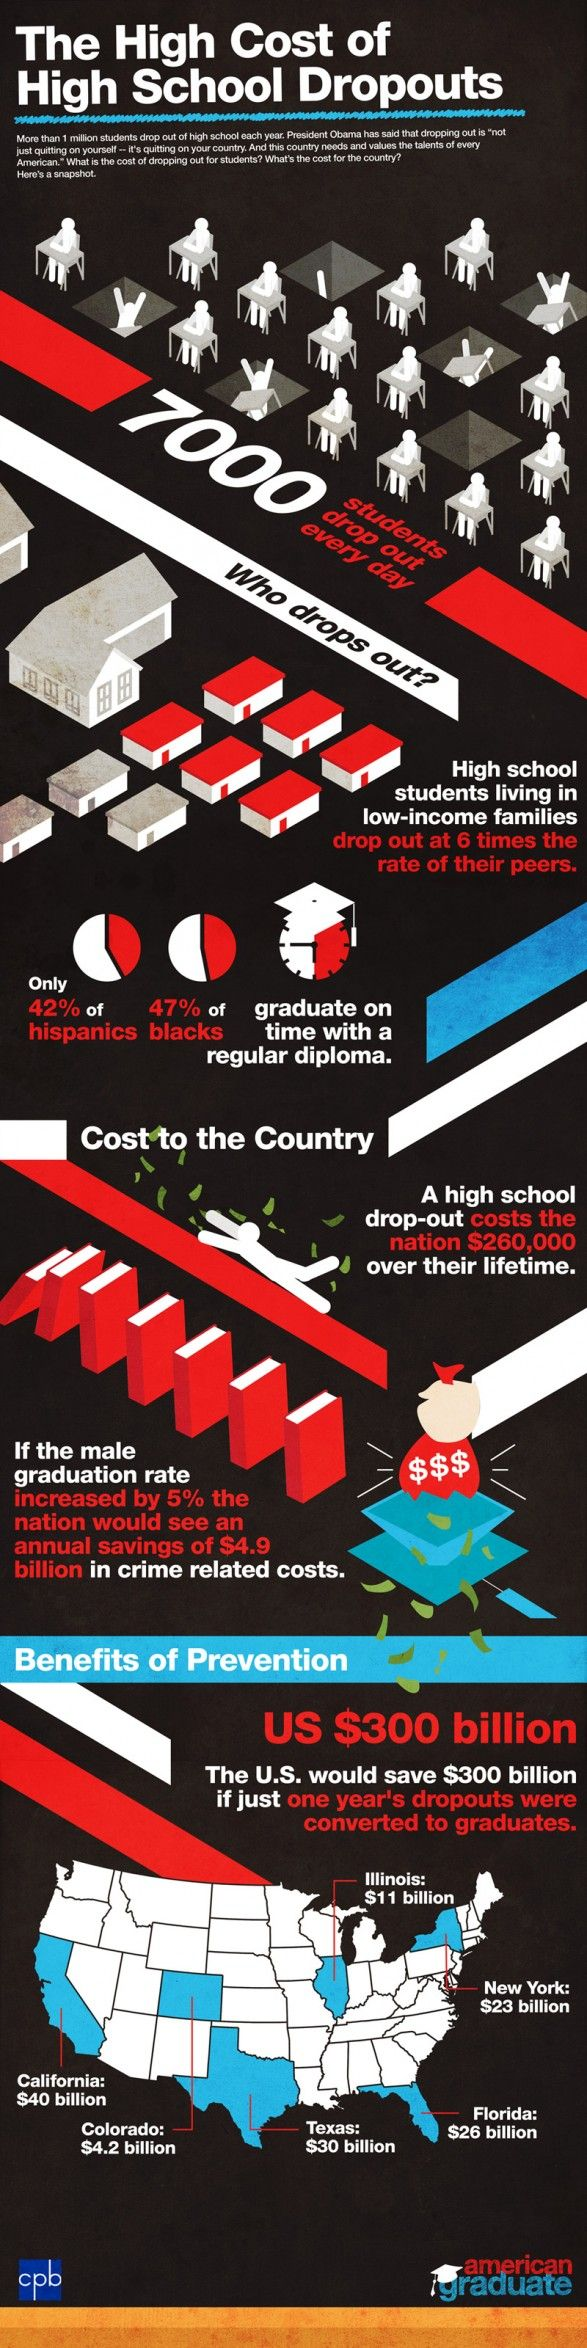 must see high school internships pins high school tips high the economic impact of dropping out of high school on students and the economy